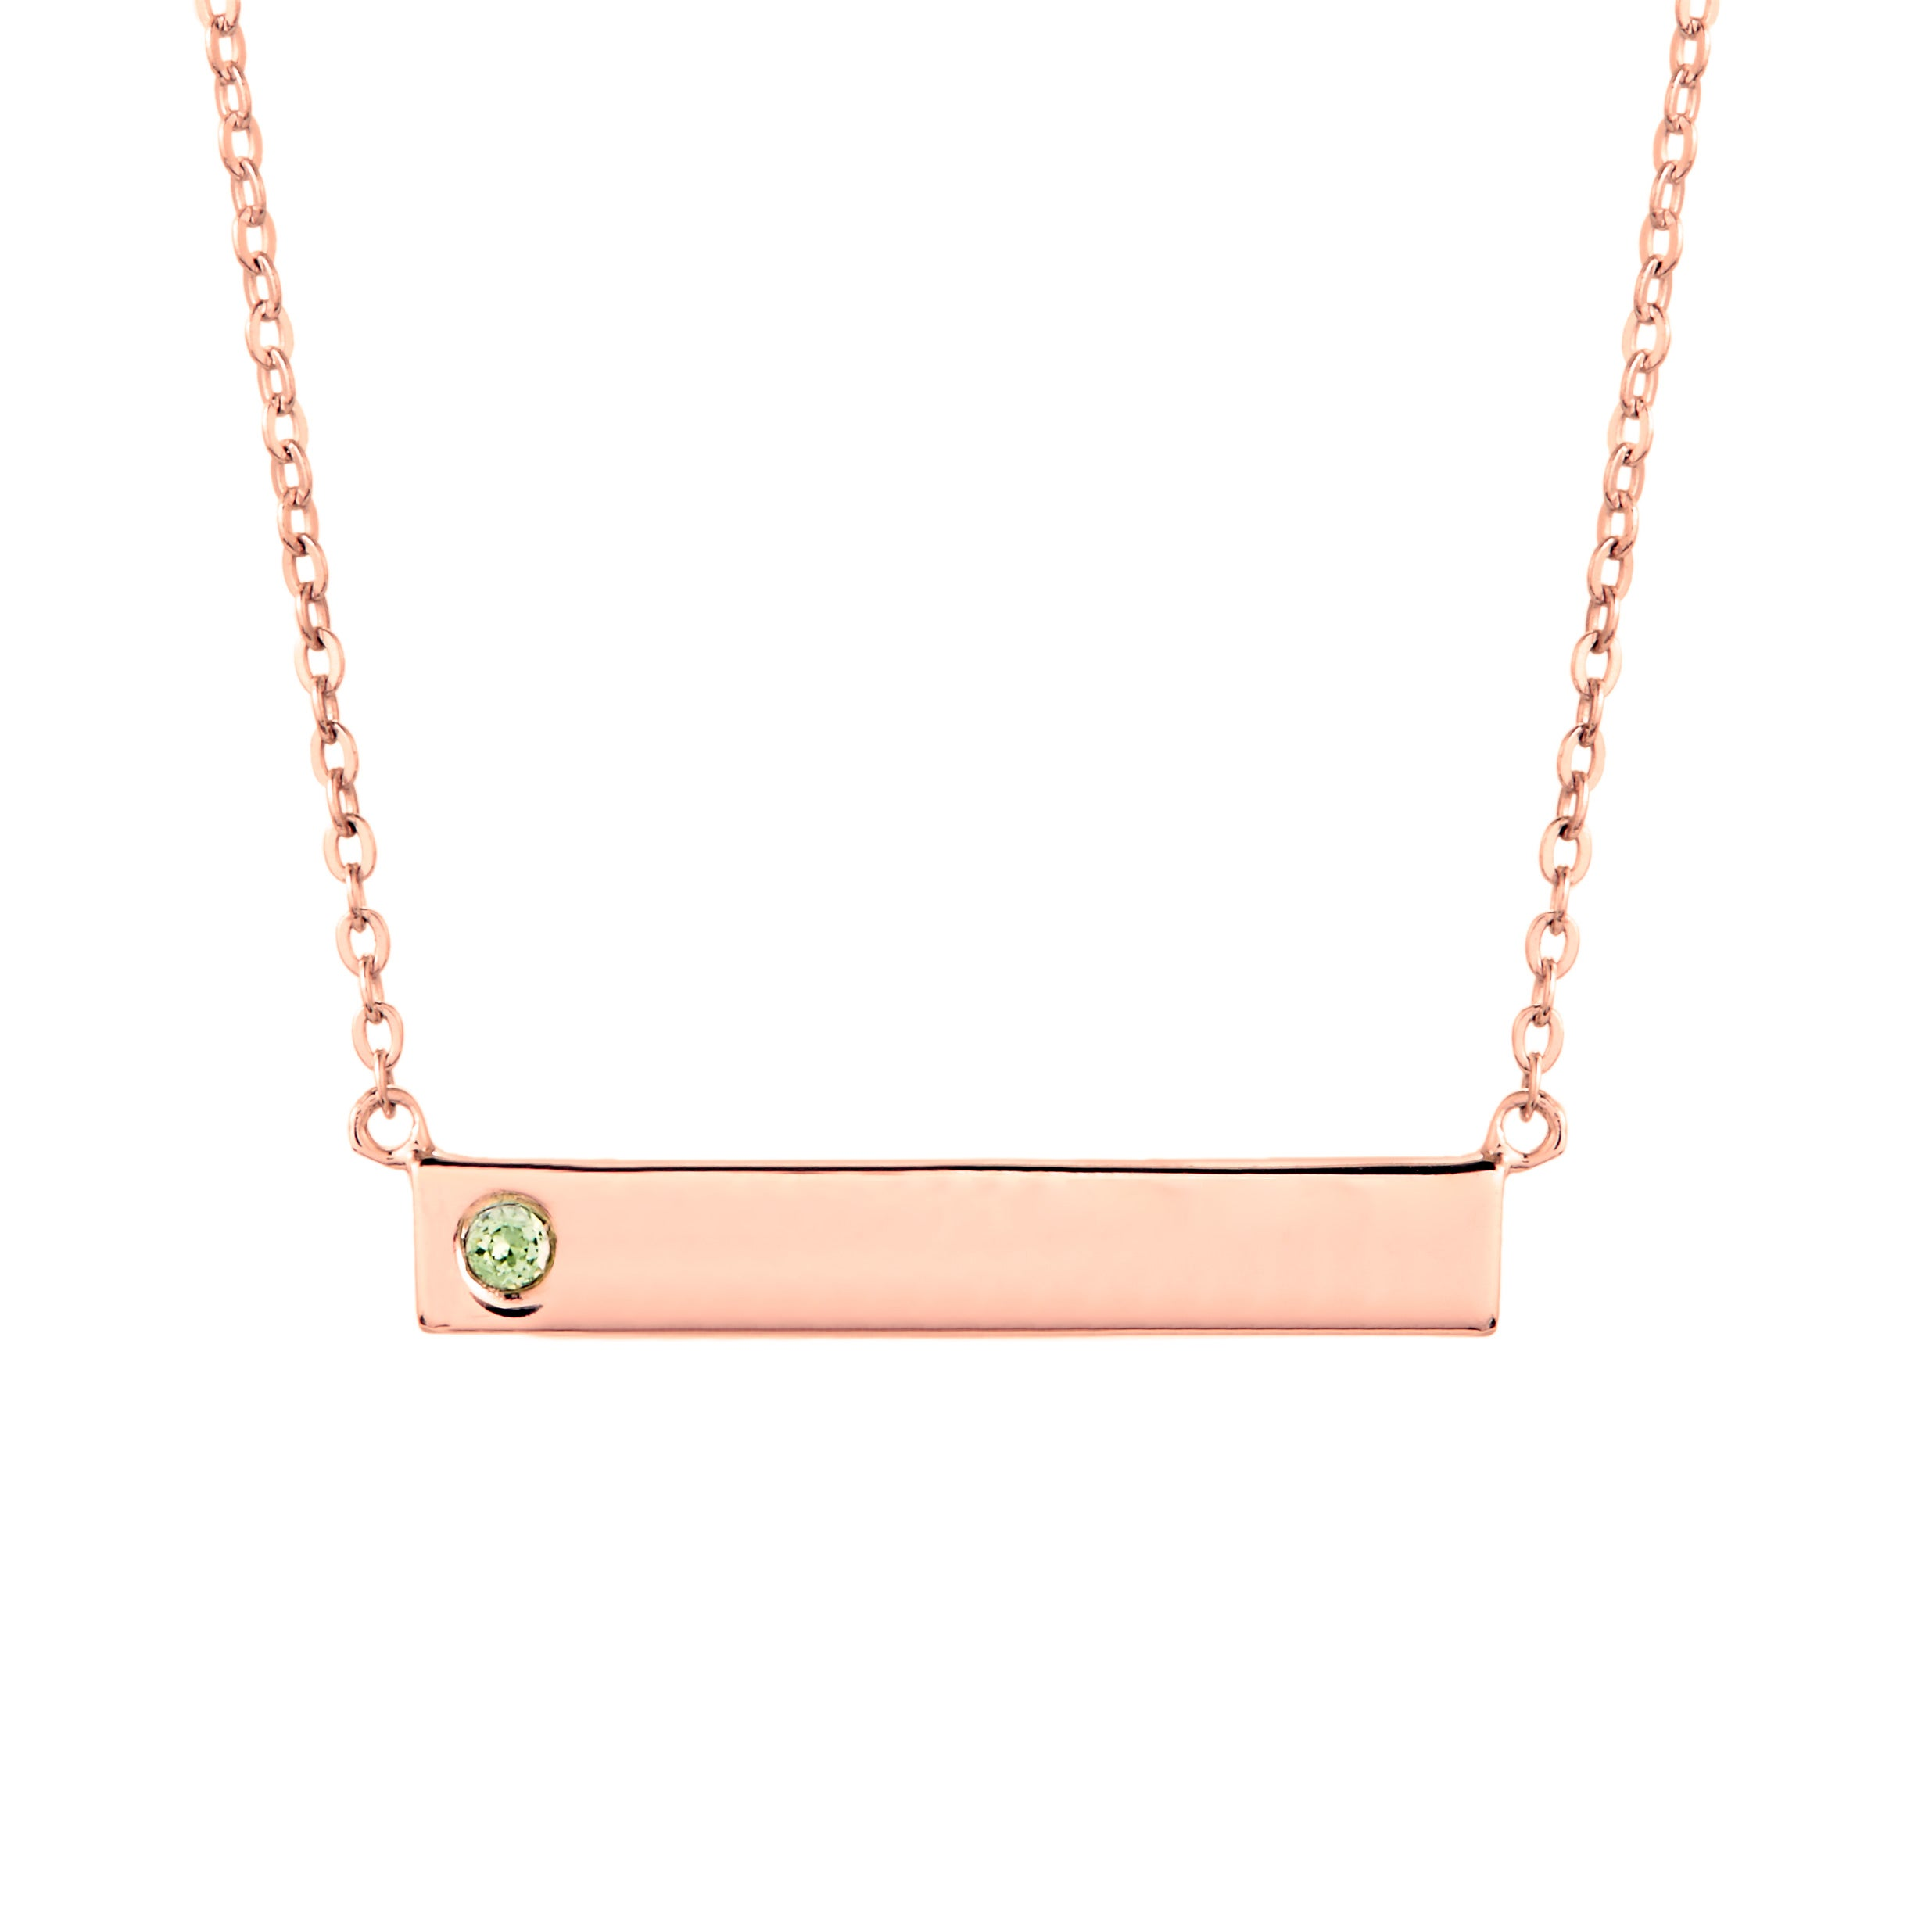 pendant necklace chain gold s bar claire